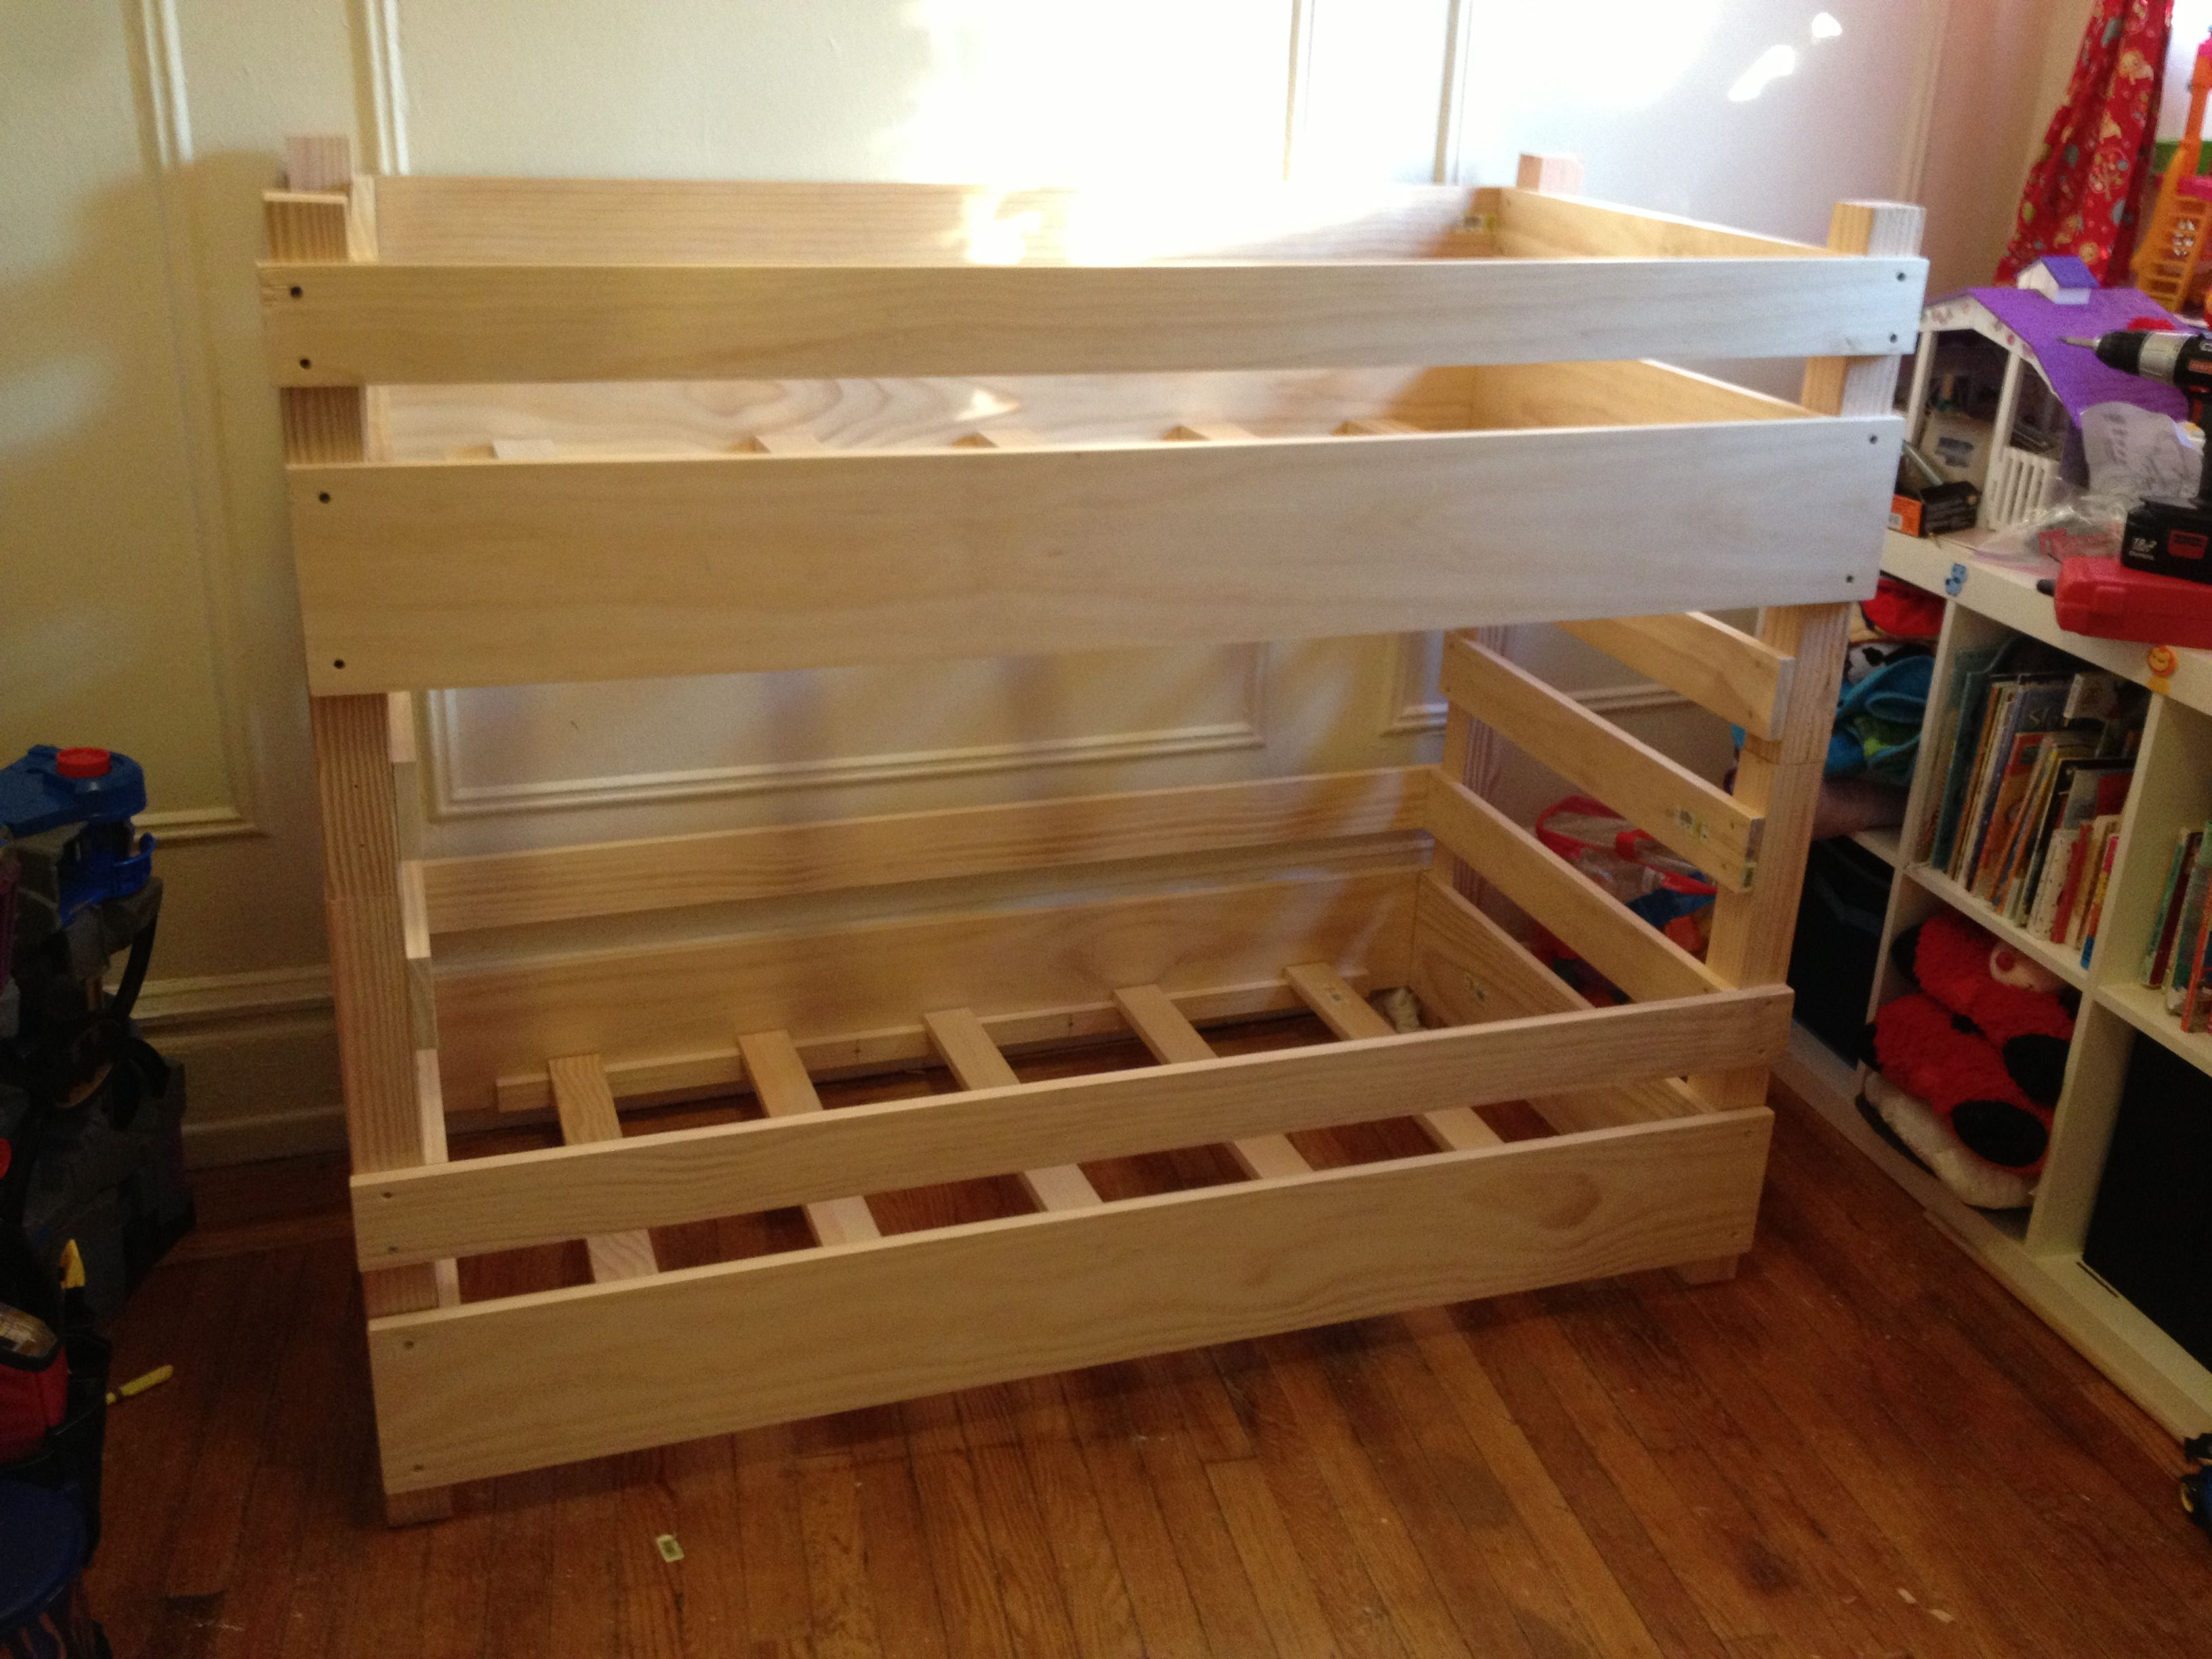 Camas Pequenas Toddler Size Bunk Beds Perfect For Small Rooms